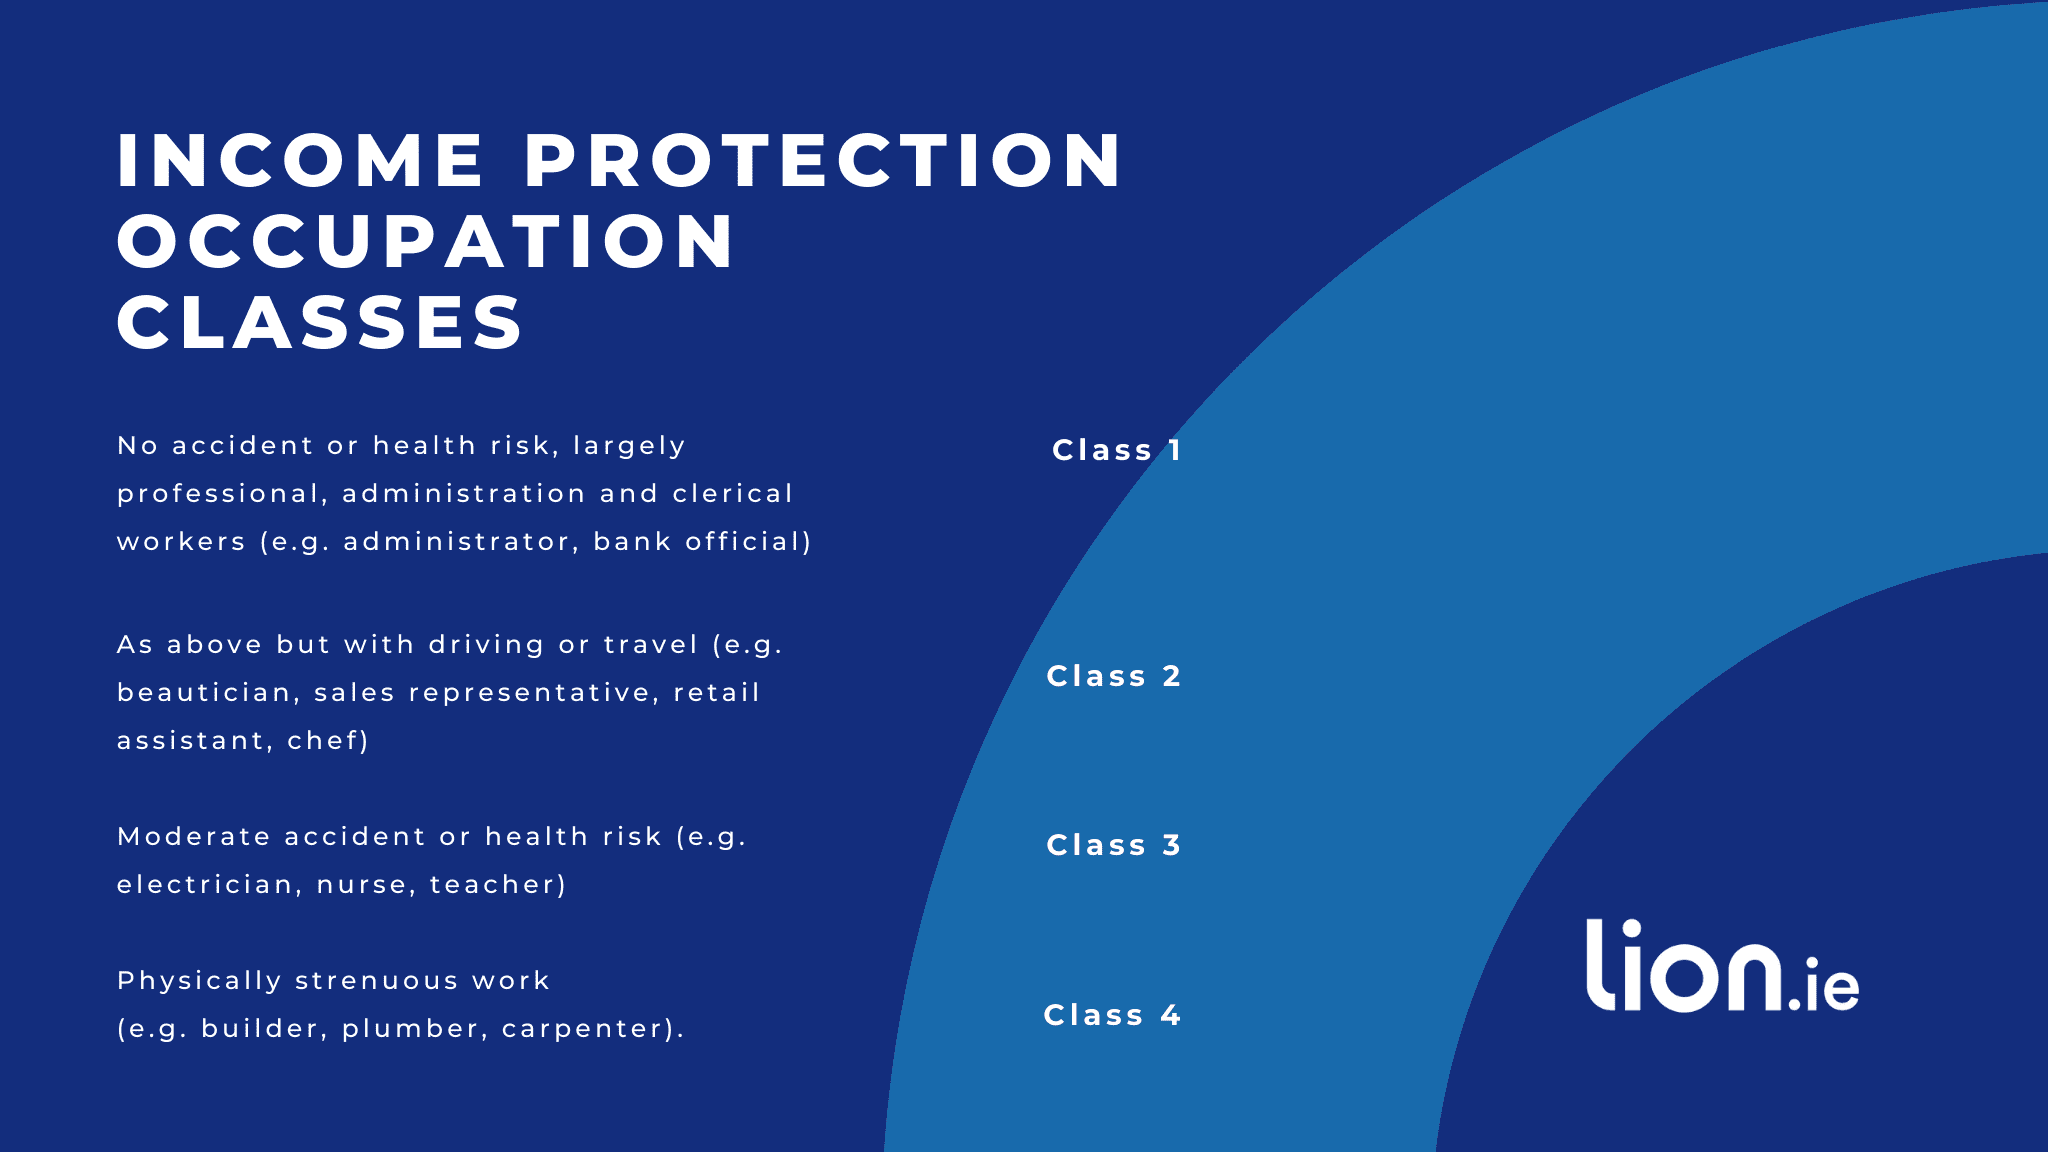 income protection occupation classes